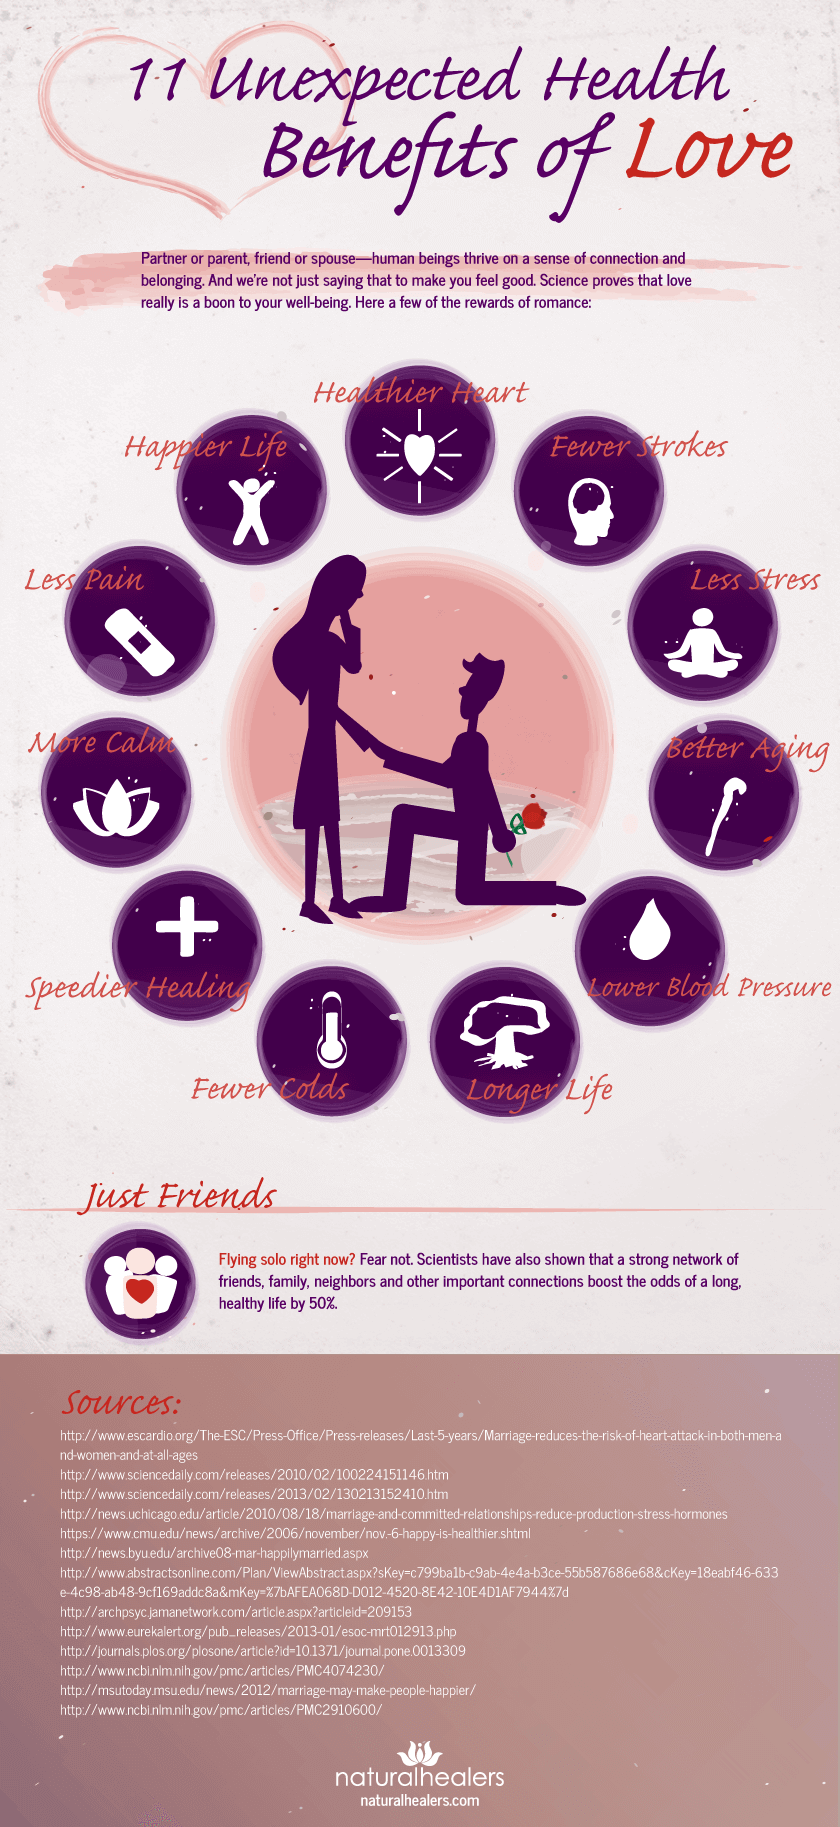 benefits-of-love-infographic